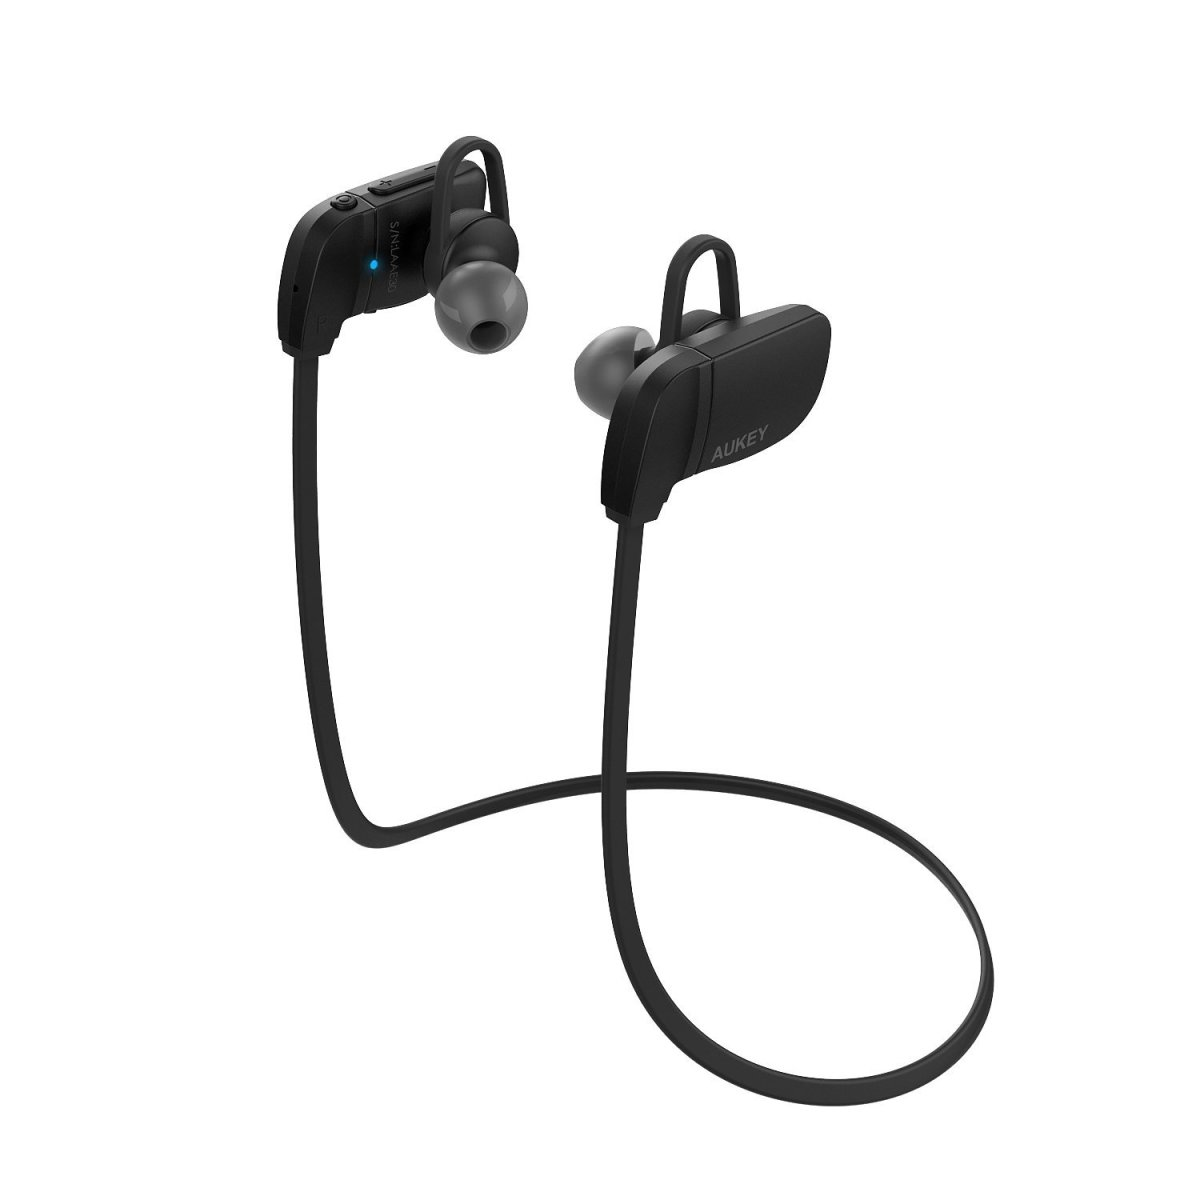 Product Review: AUKEY Bluetooth Wireless Earbuds